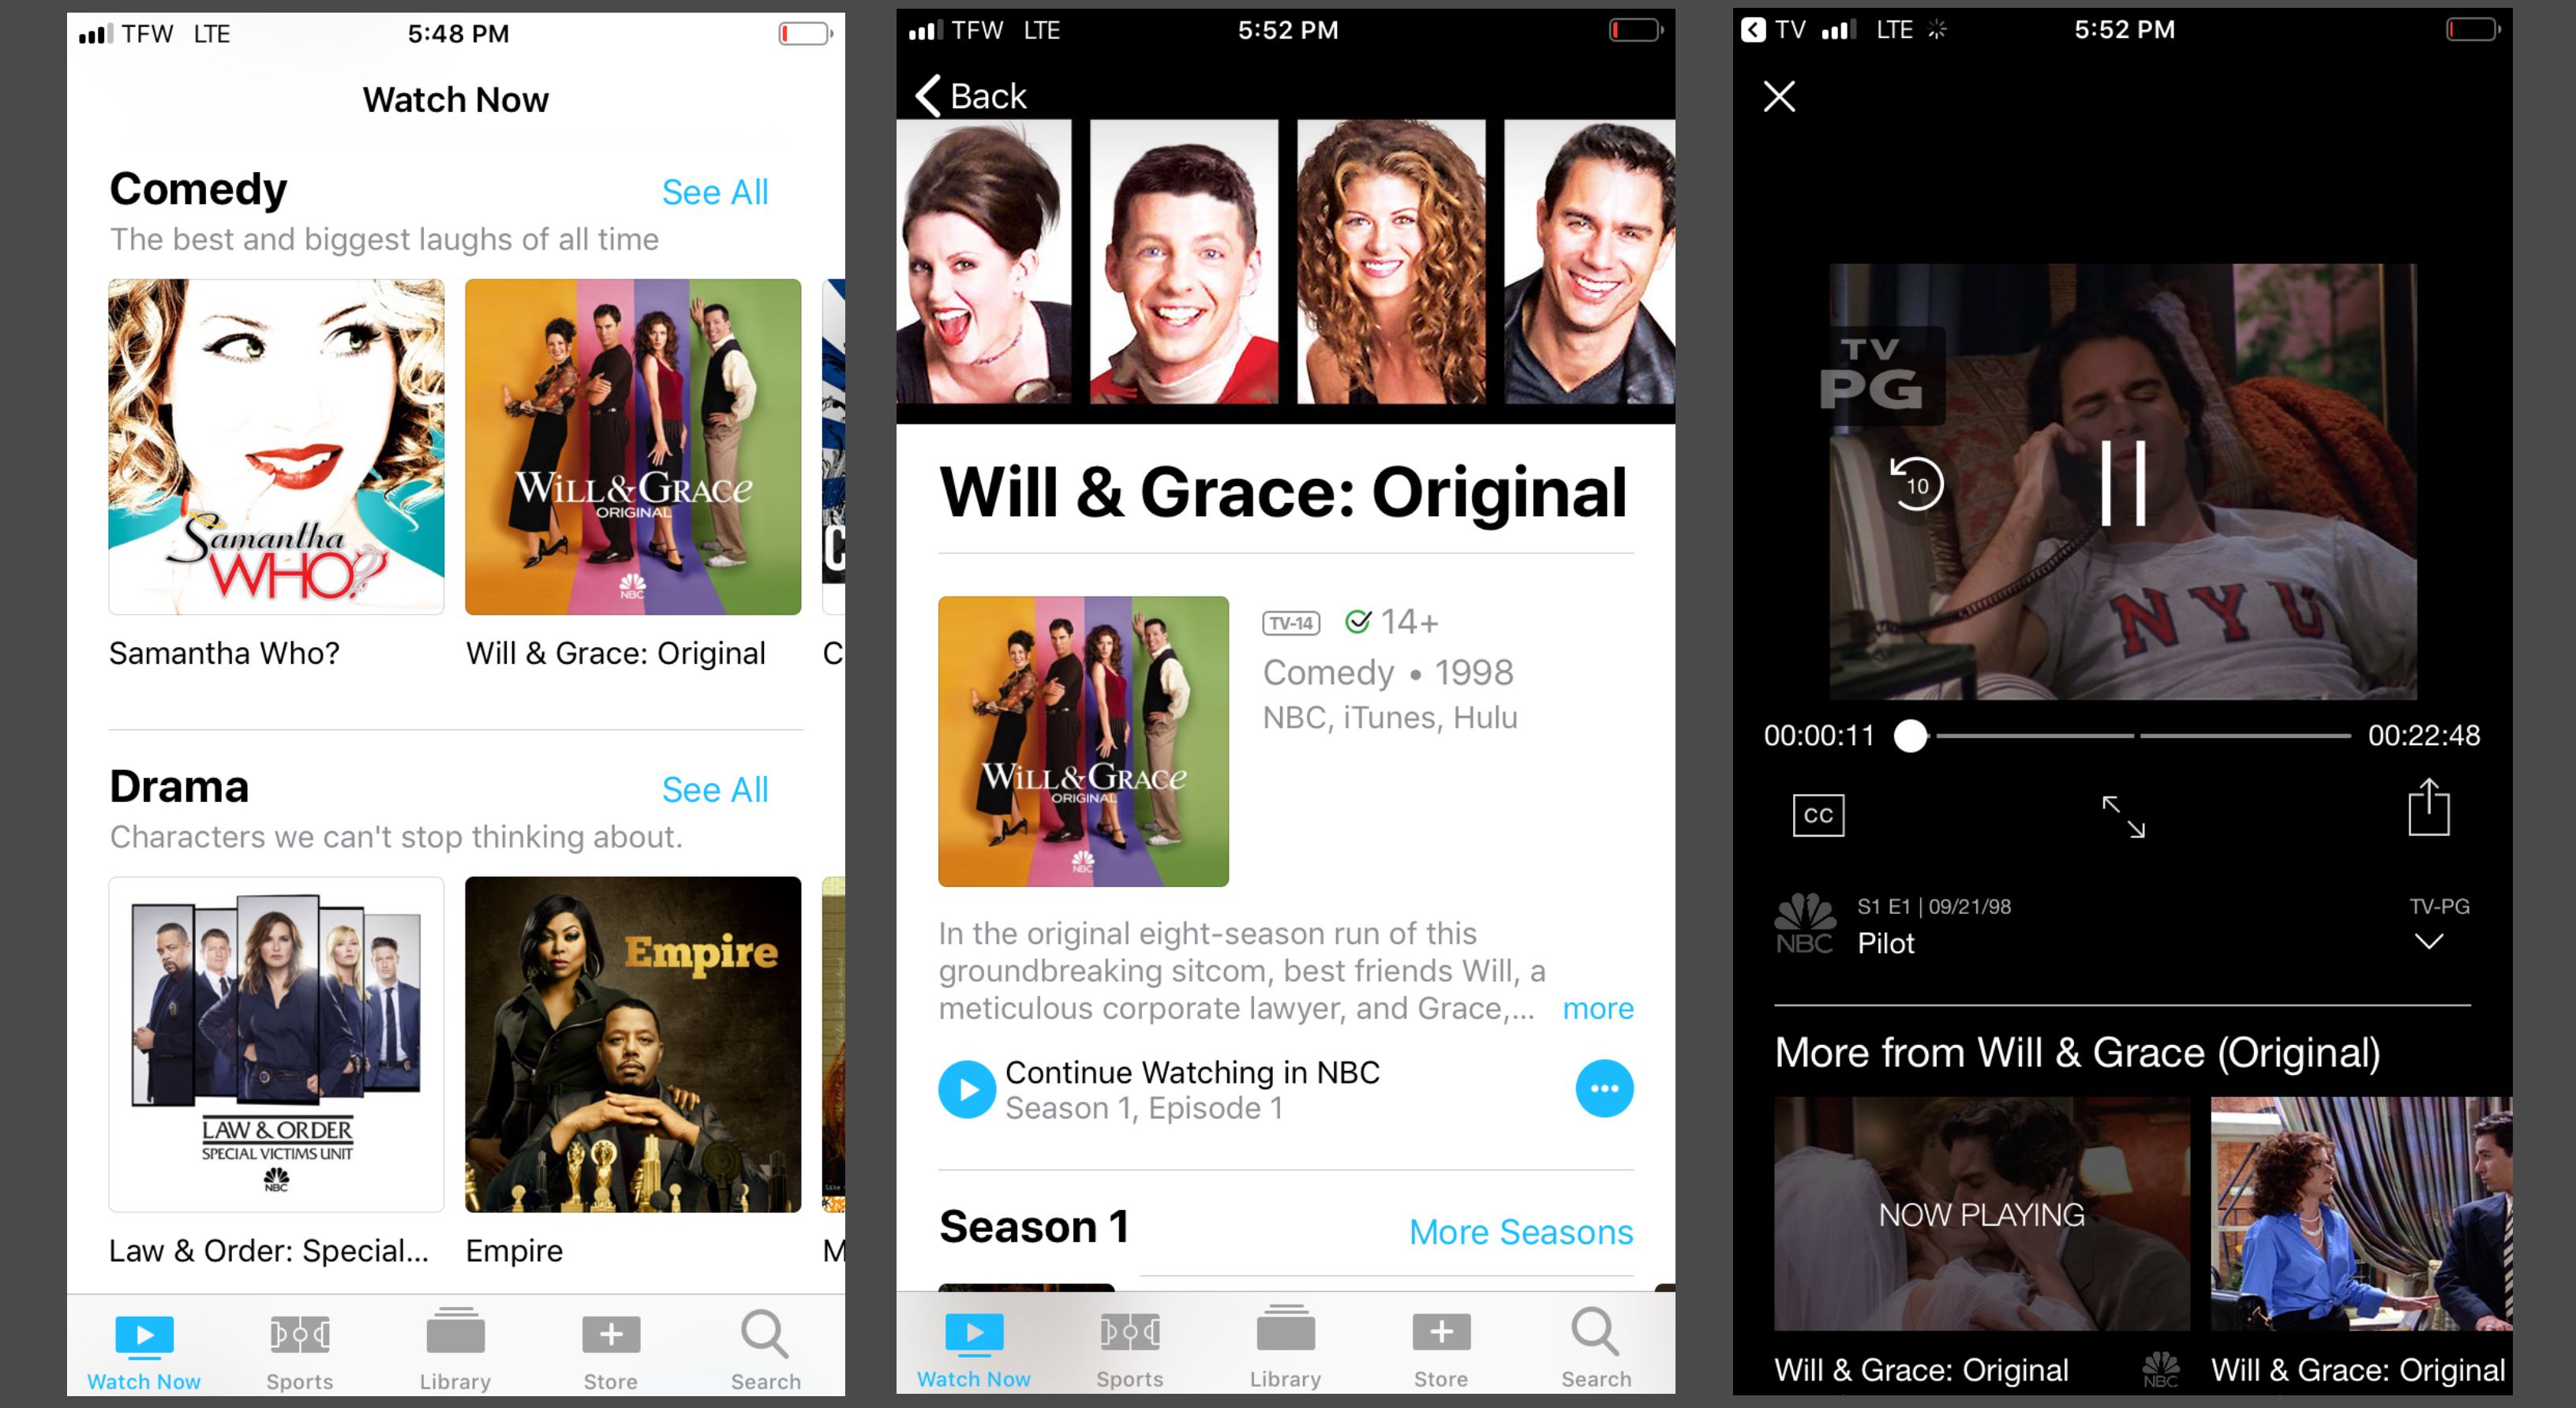 How to Use the iPhone TV App